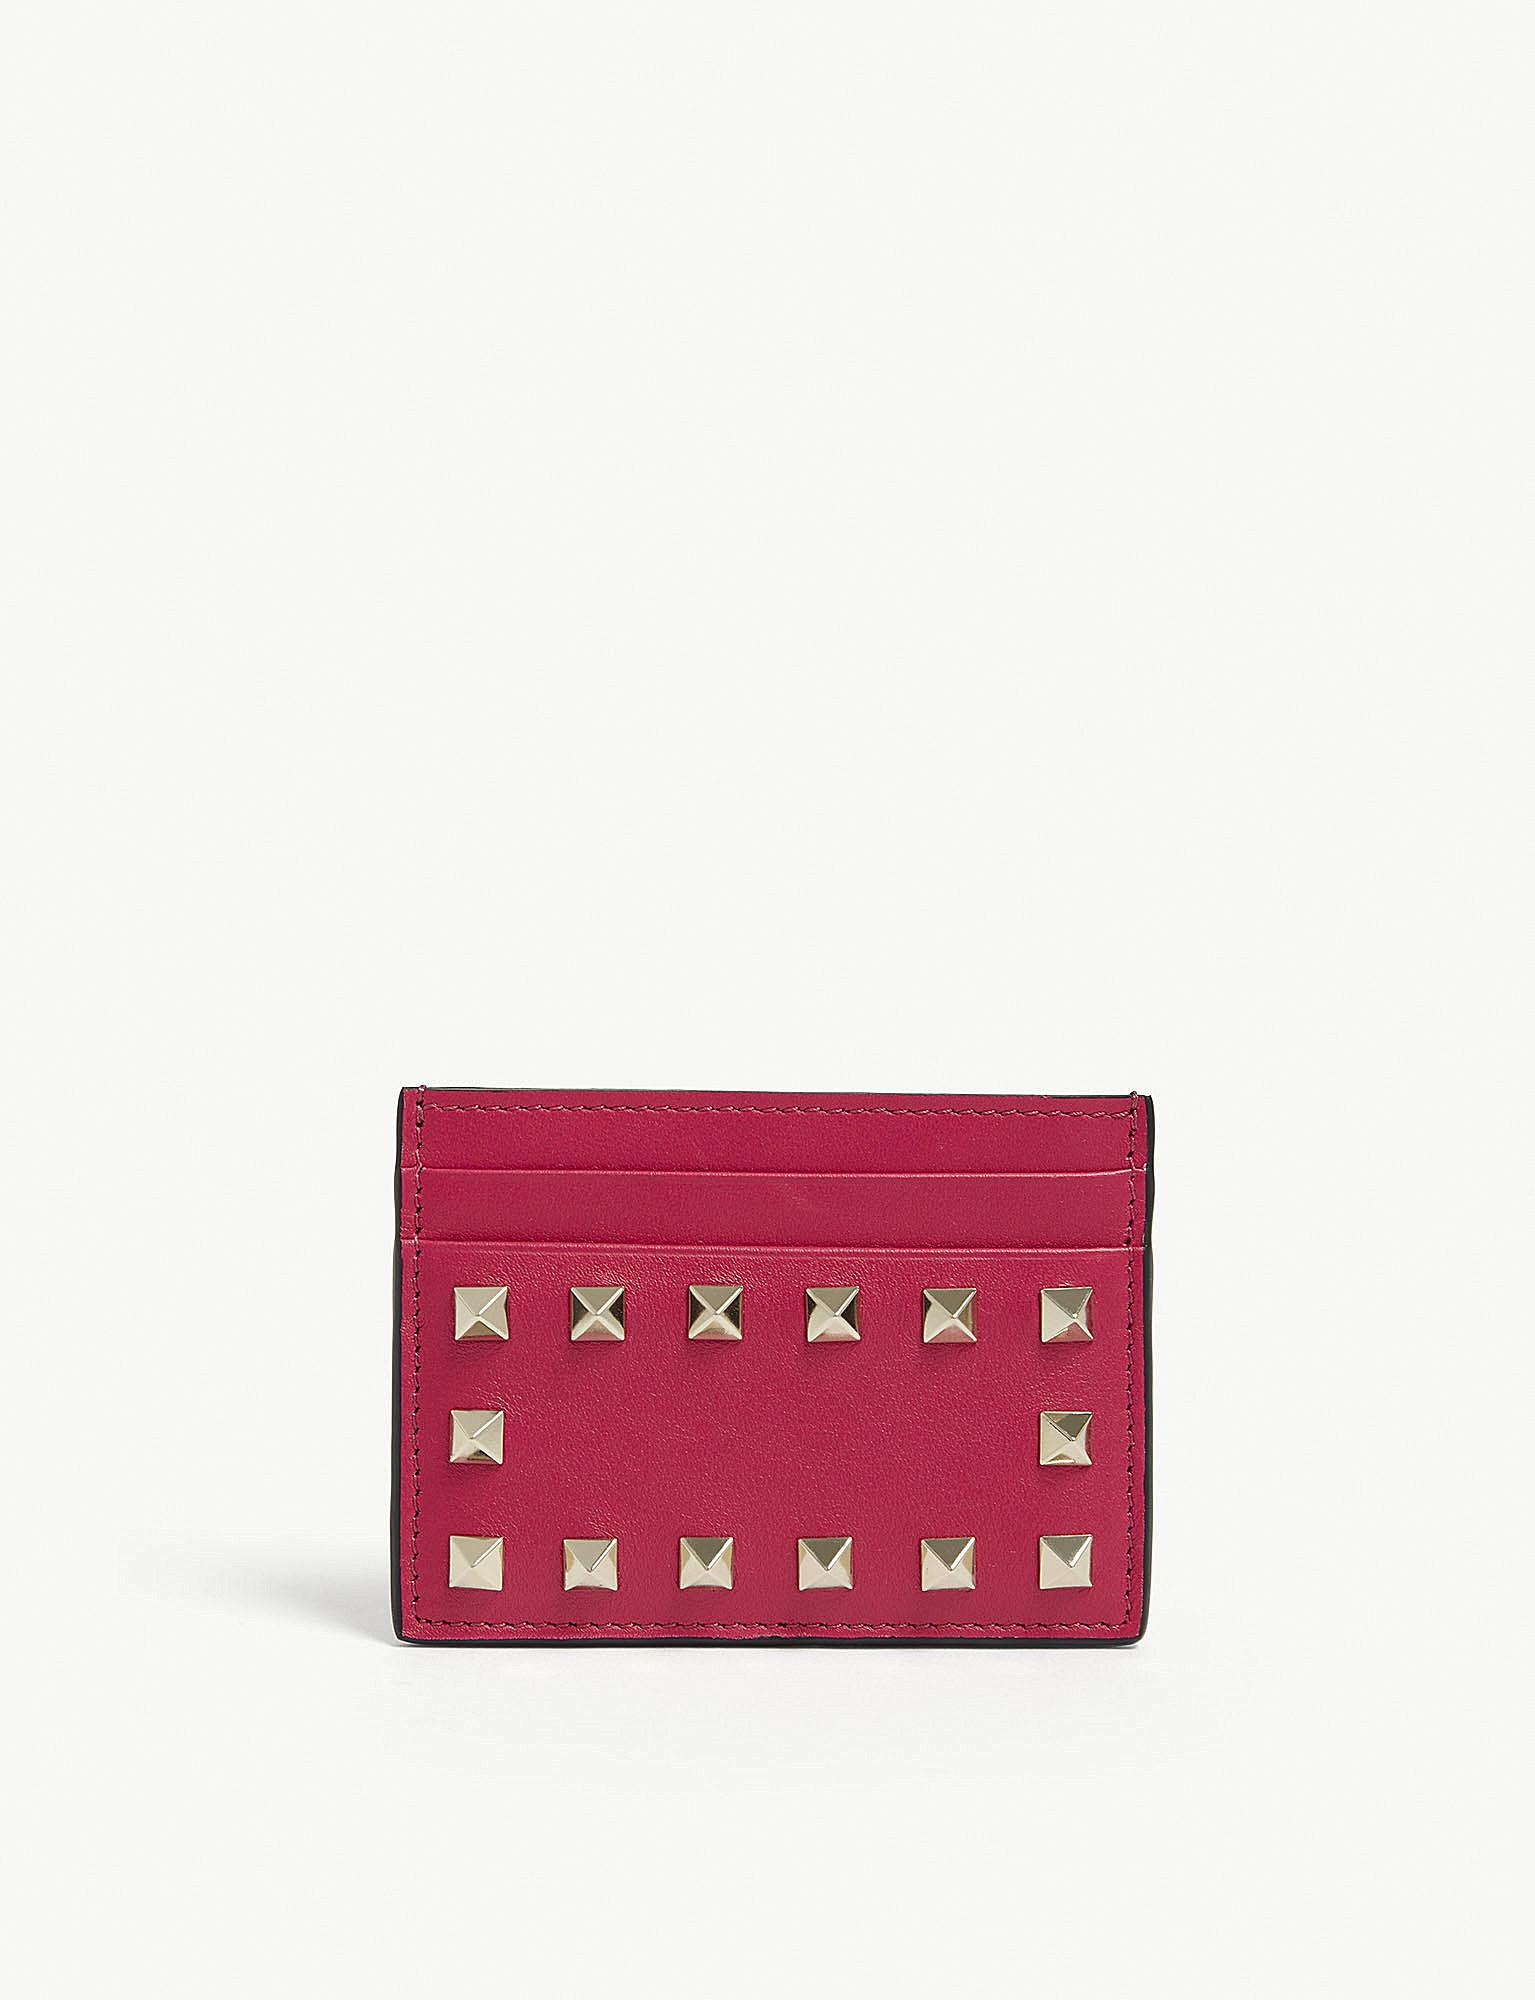 5713709a0a9d3 Lyst - Valentino Disco Pink Rockstud Card Holder in Pink